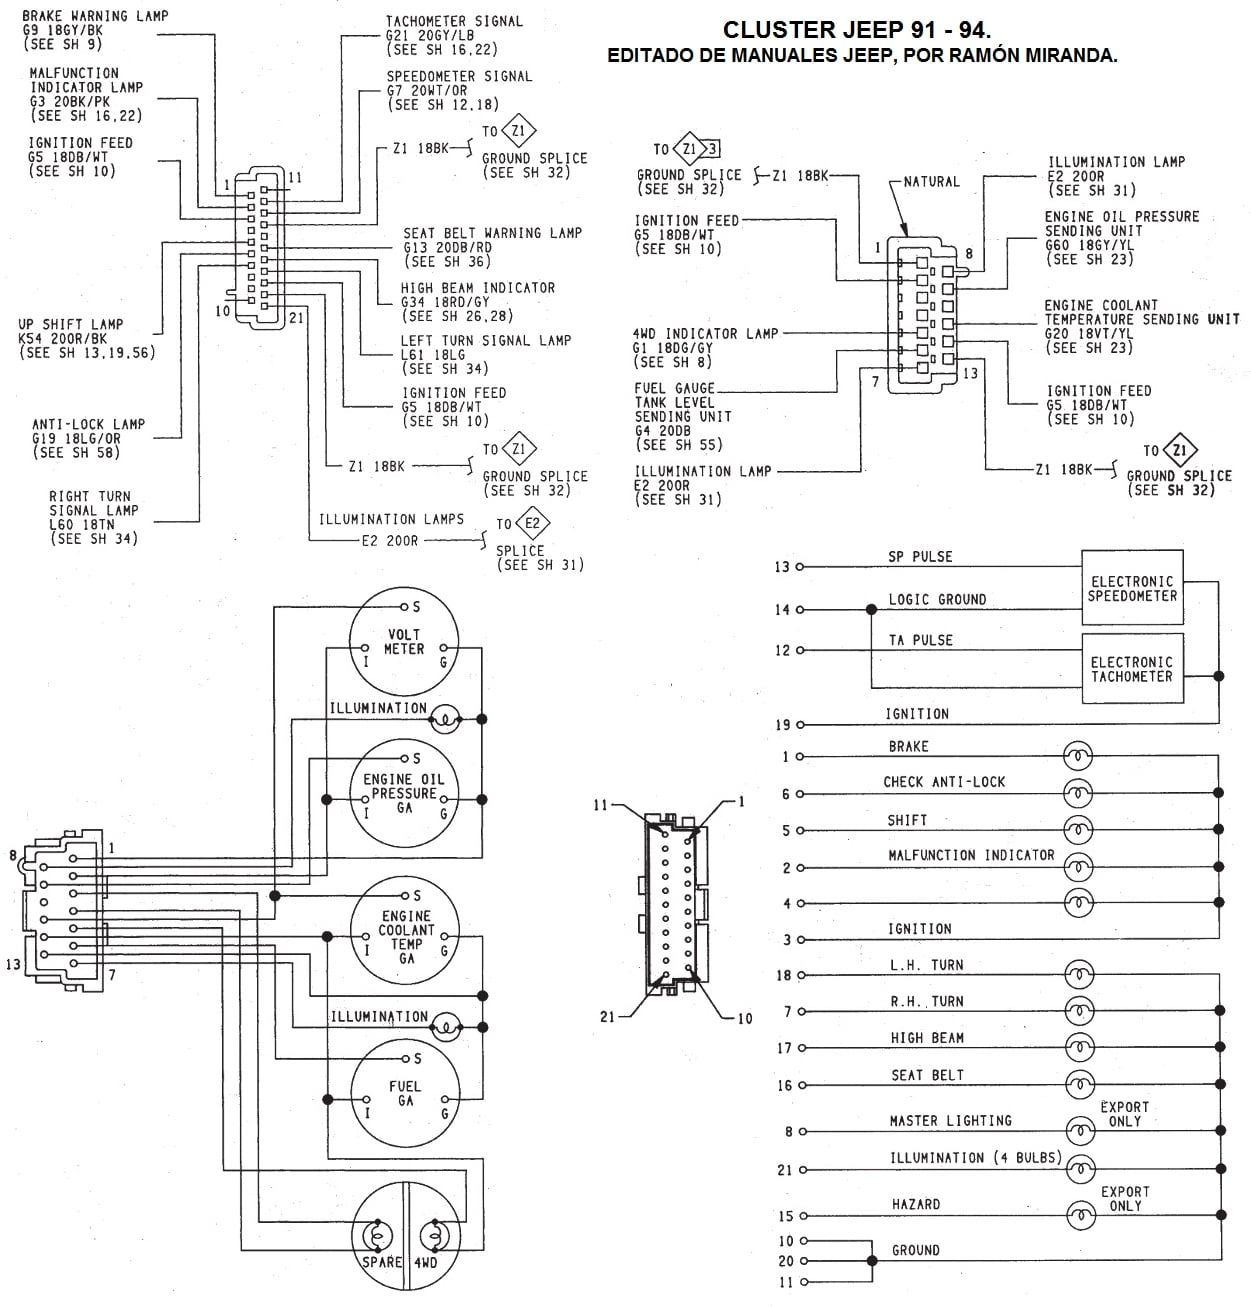 2011 Wrangler Pcm Wiring Diagram